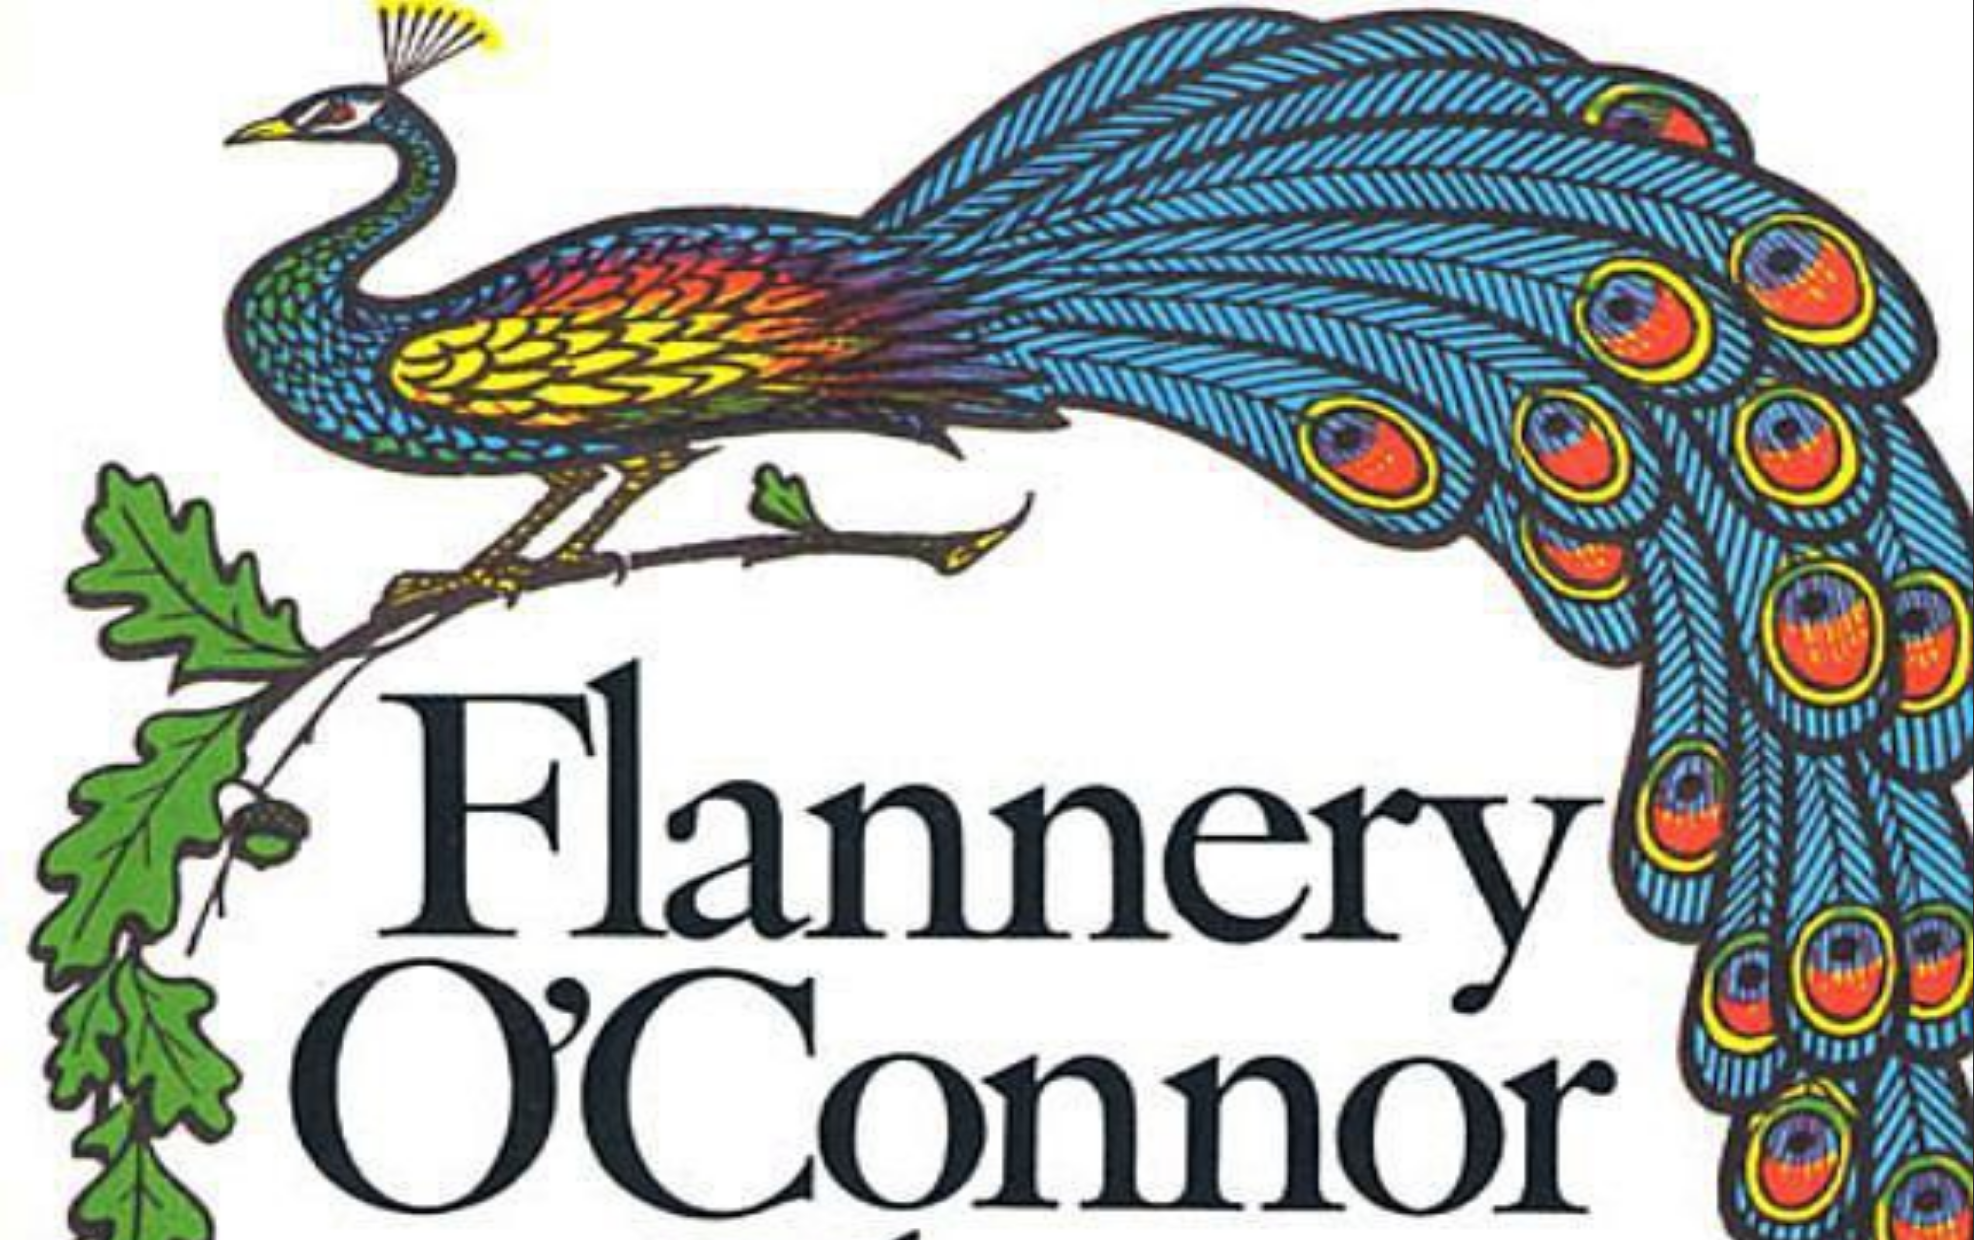 flannery oconnor single author comparison essay Mystery and manners: occasional prose articles and essays o'connor published in her my daughter loves this book and flannery o'connor is her favorite author.